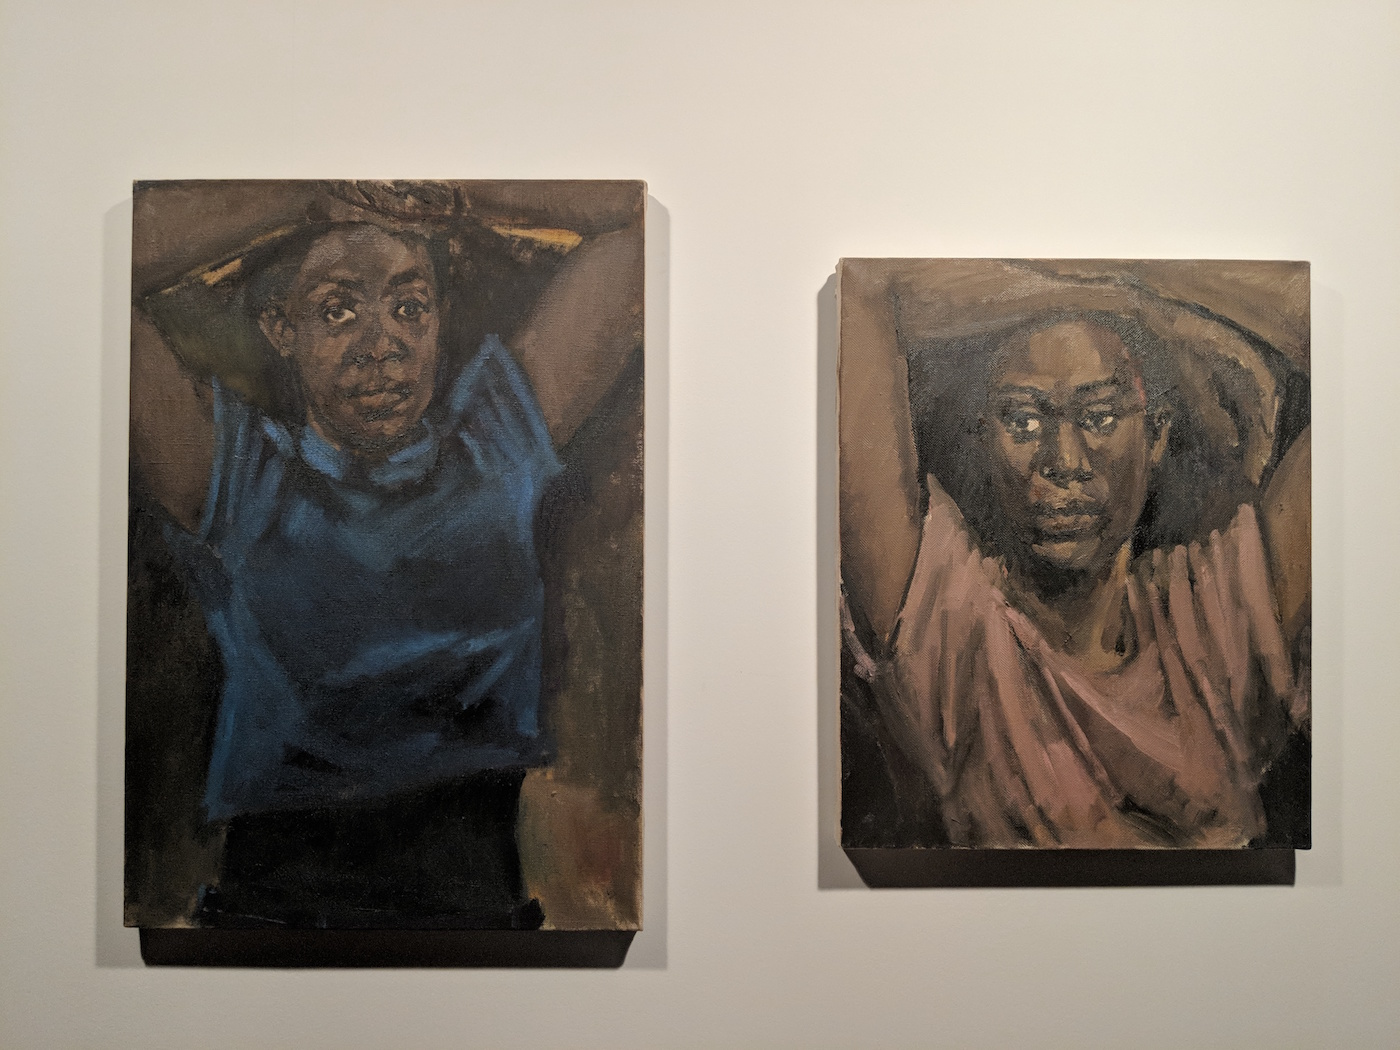 Lynette Yiadom-Boakye, A File For A Martyr To A Cause, 2018. Photo: C&.